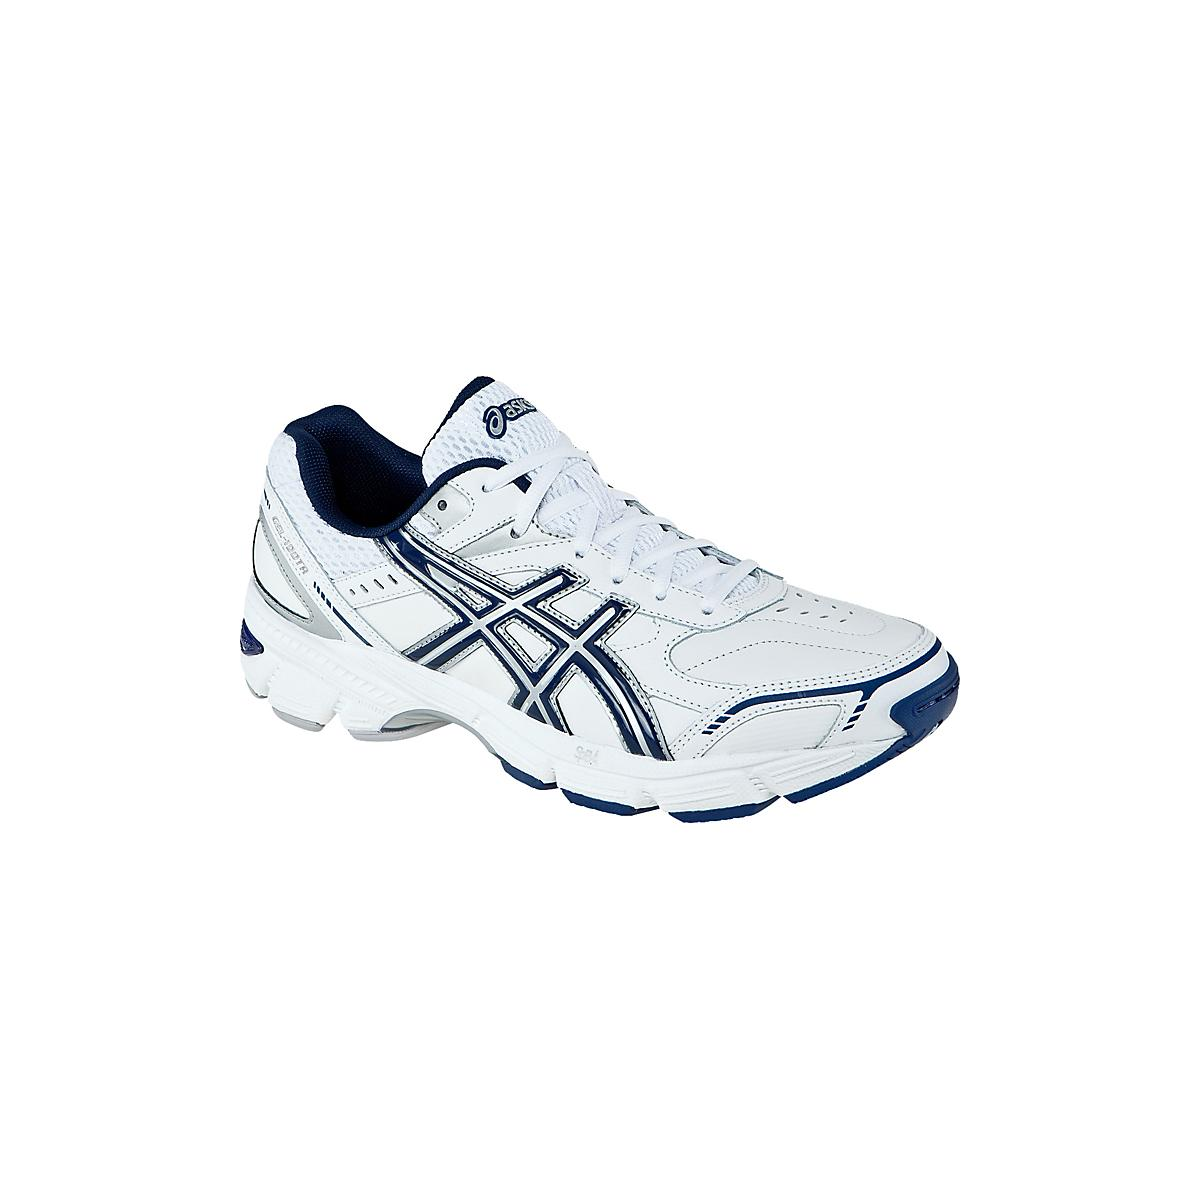 c27d61944754 Mens ASICS GEL-180 TR Leather Cross Training Shoe at Road Runner Sports